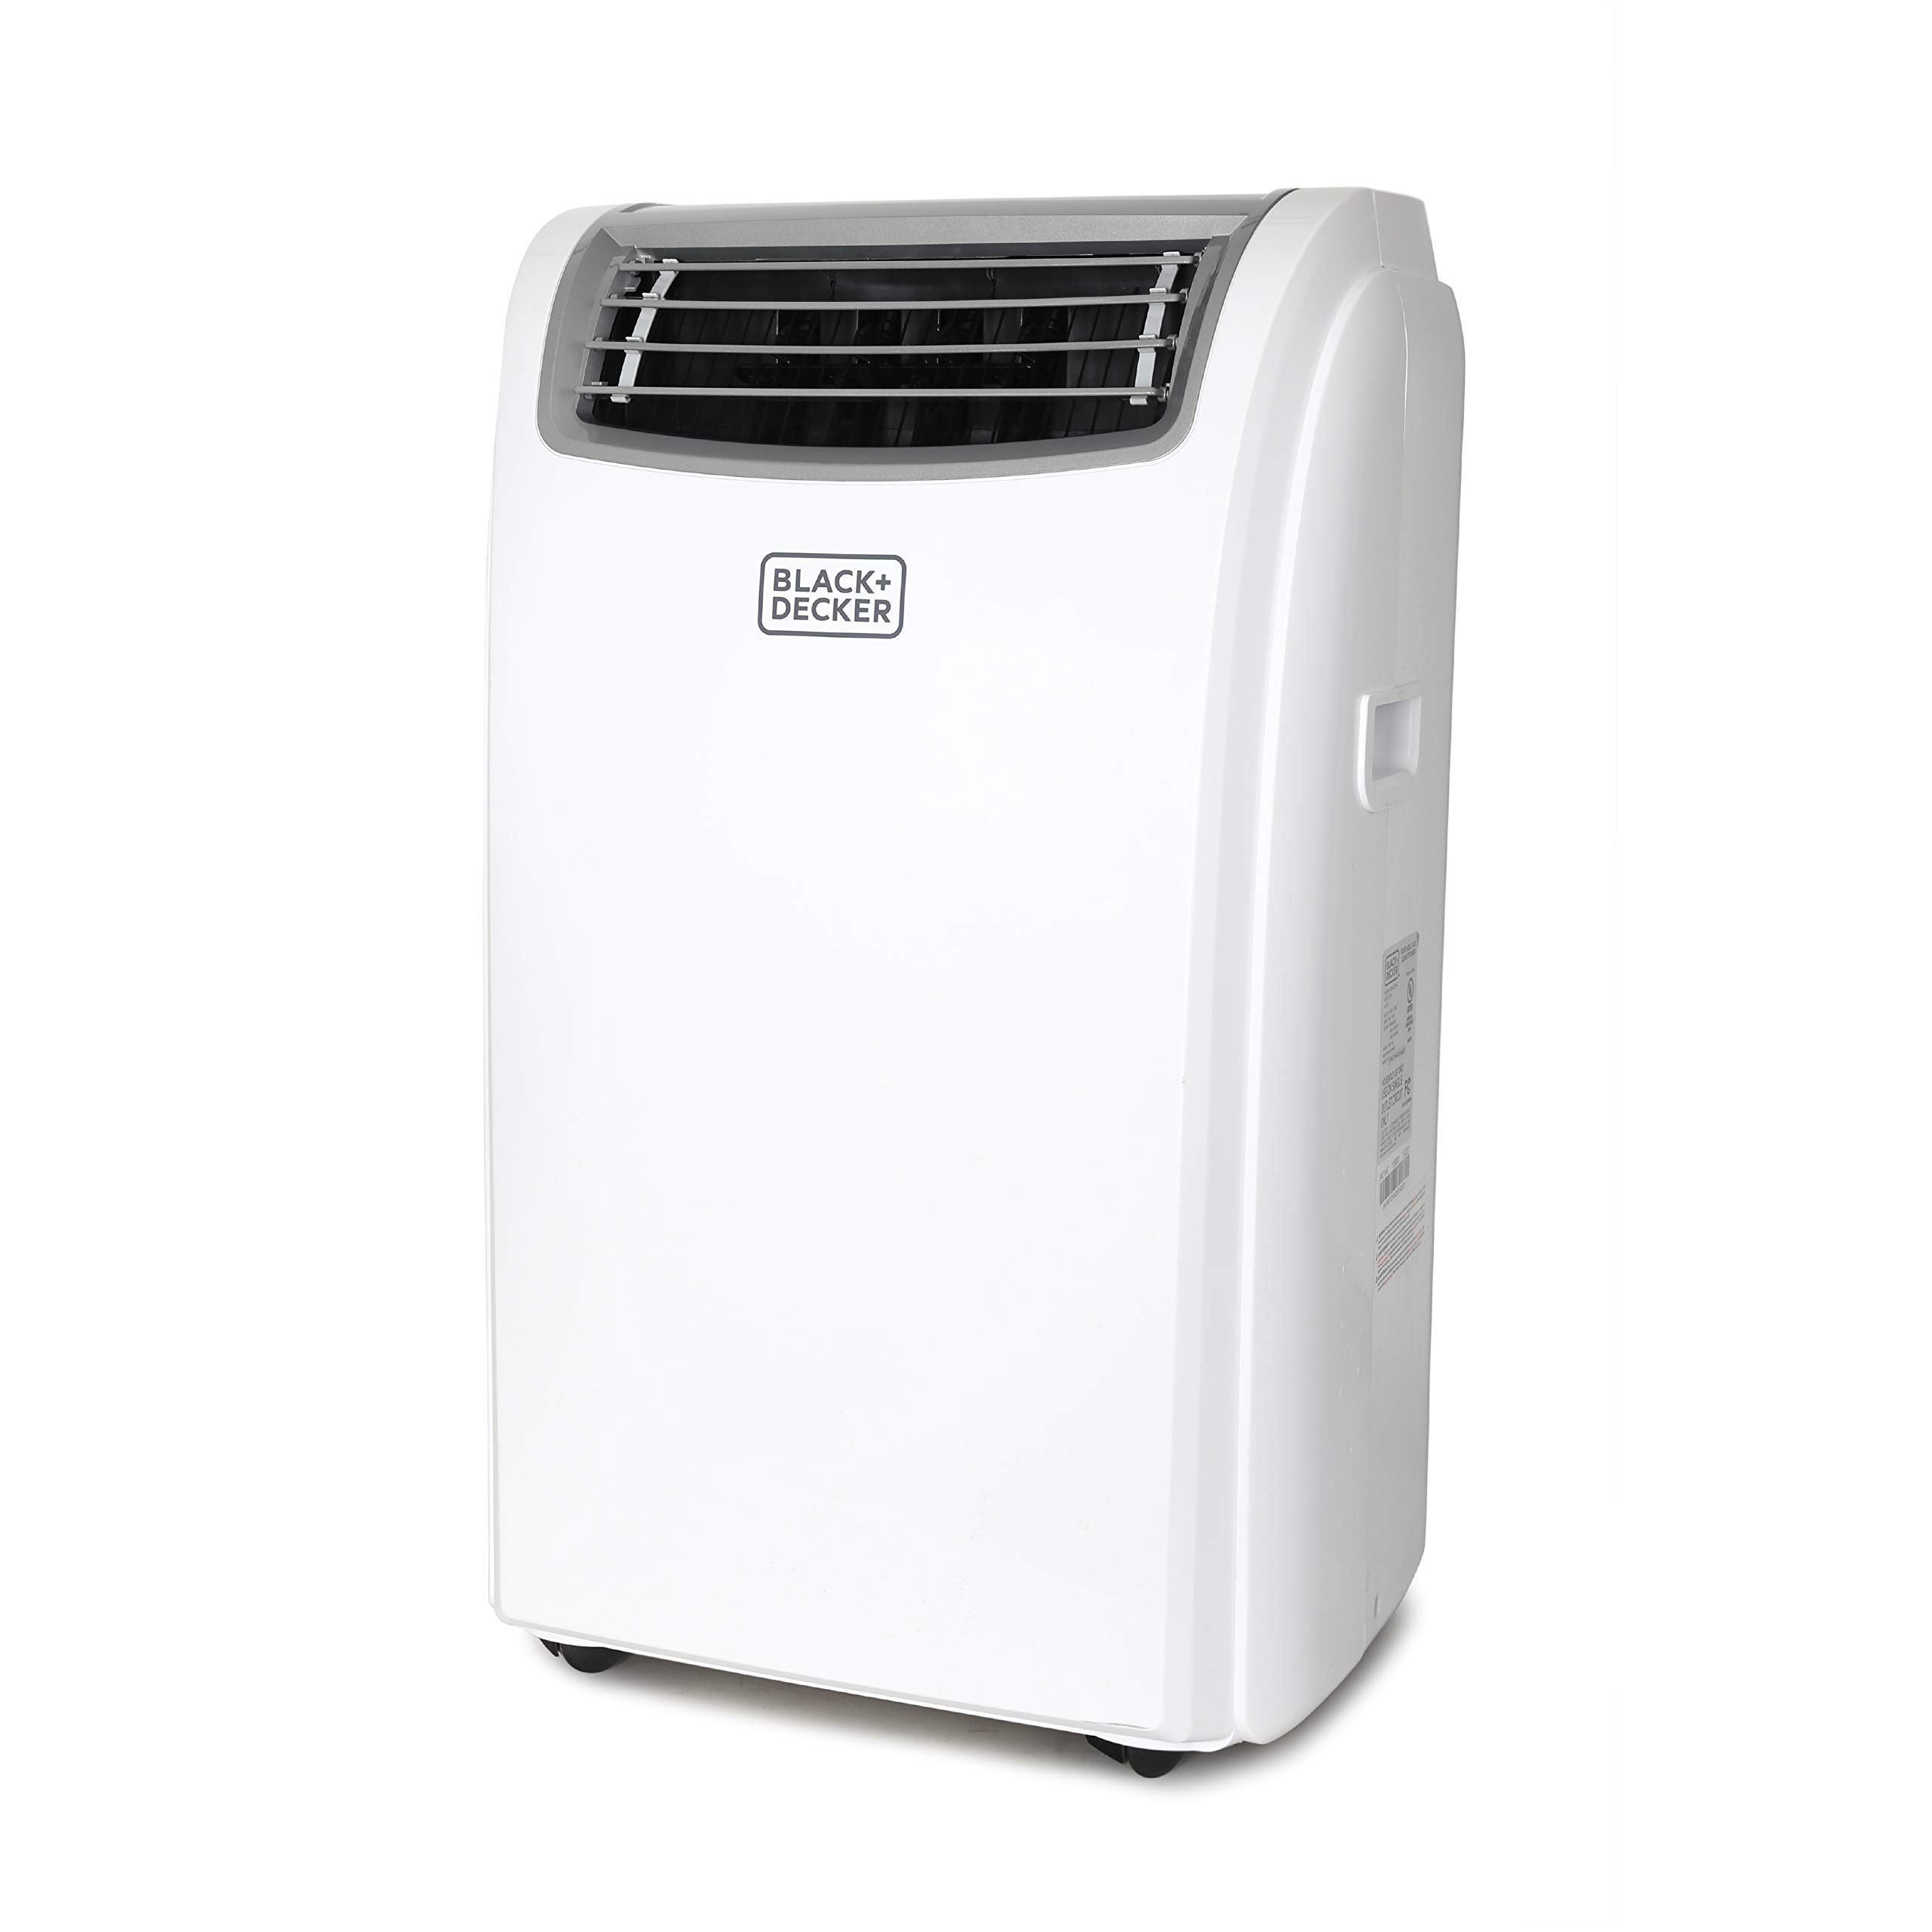 BLACK+DECKER BPACT12WT Portable Air Conditioner, 12,000 BTU, White